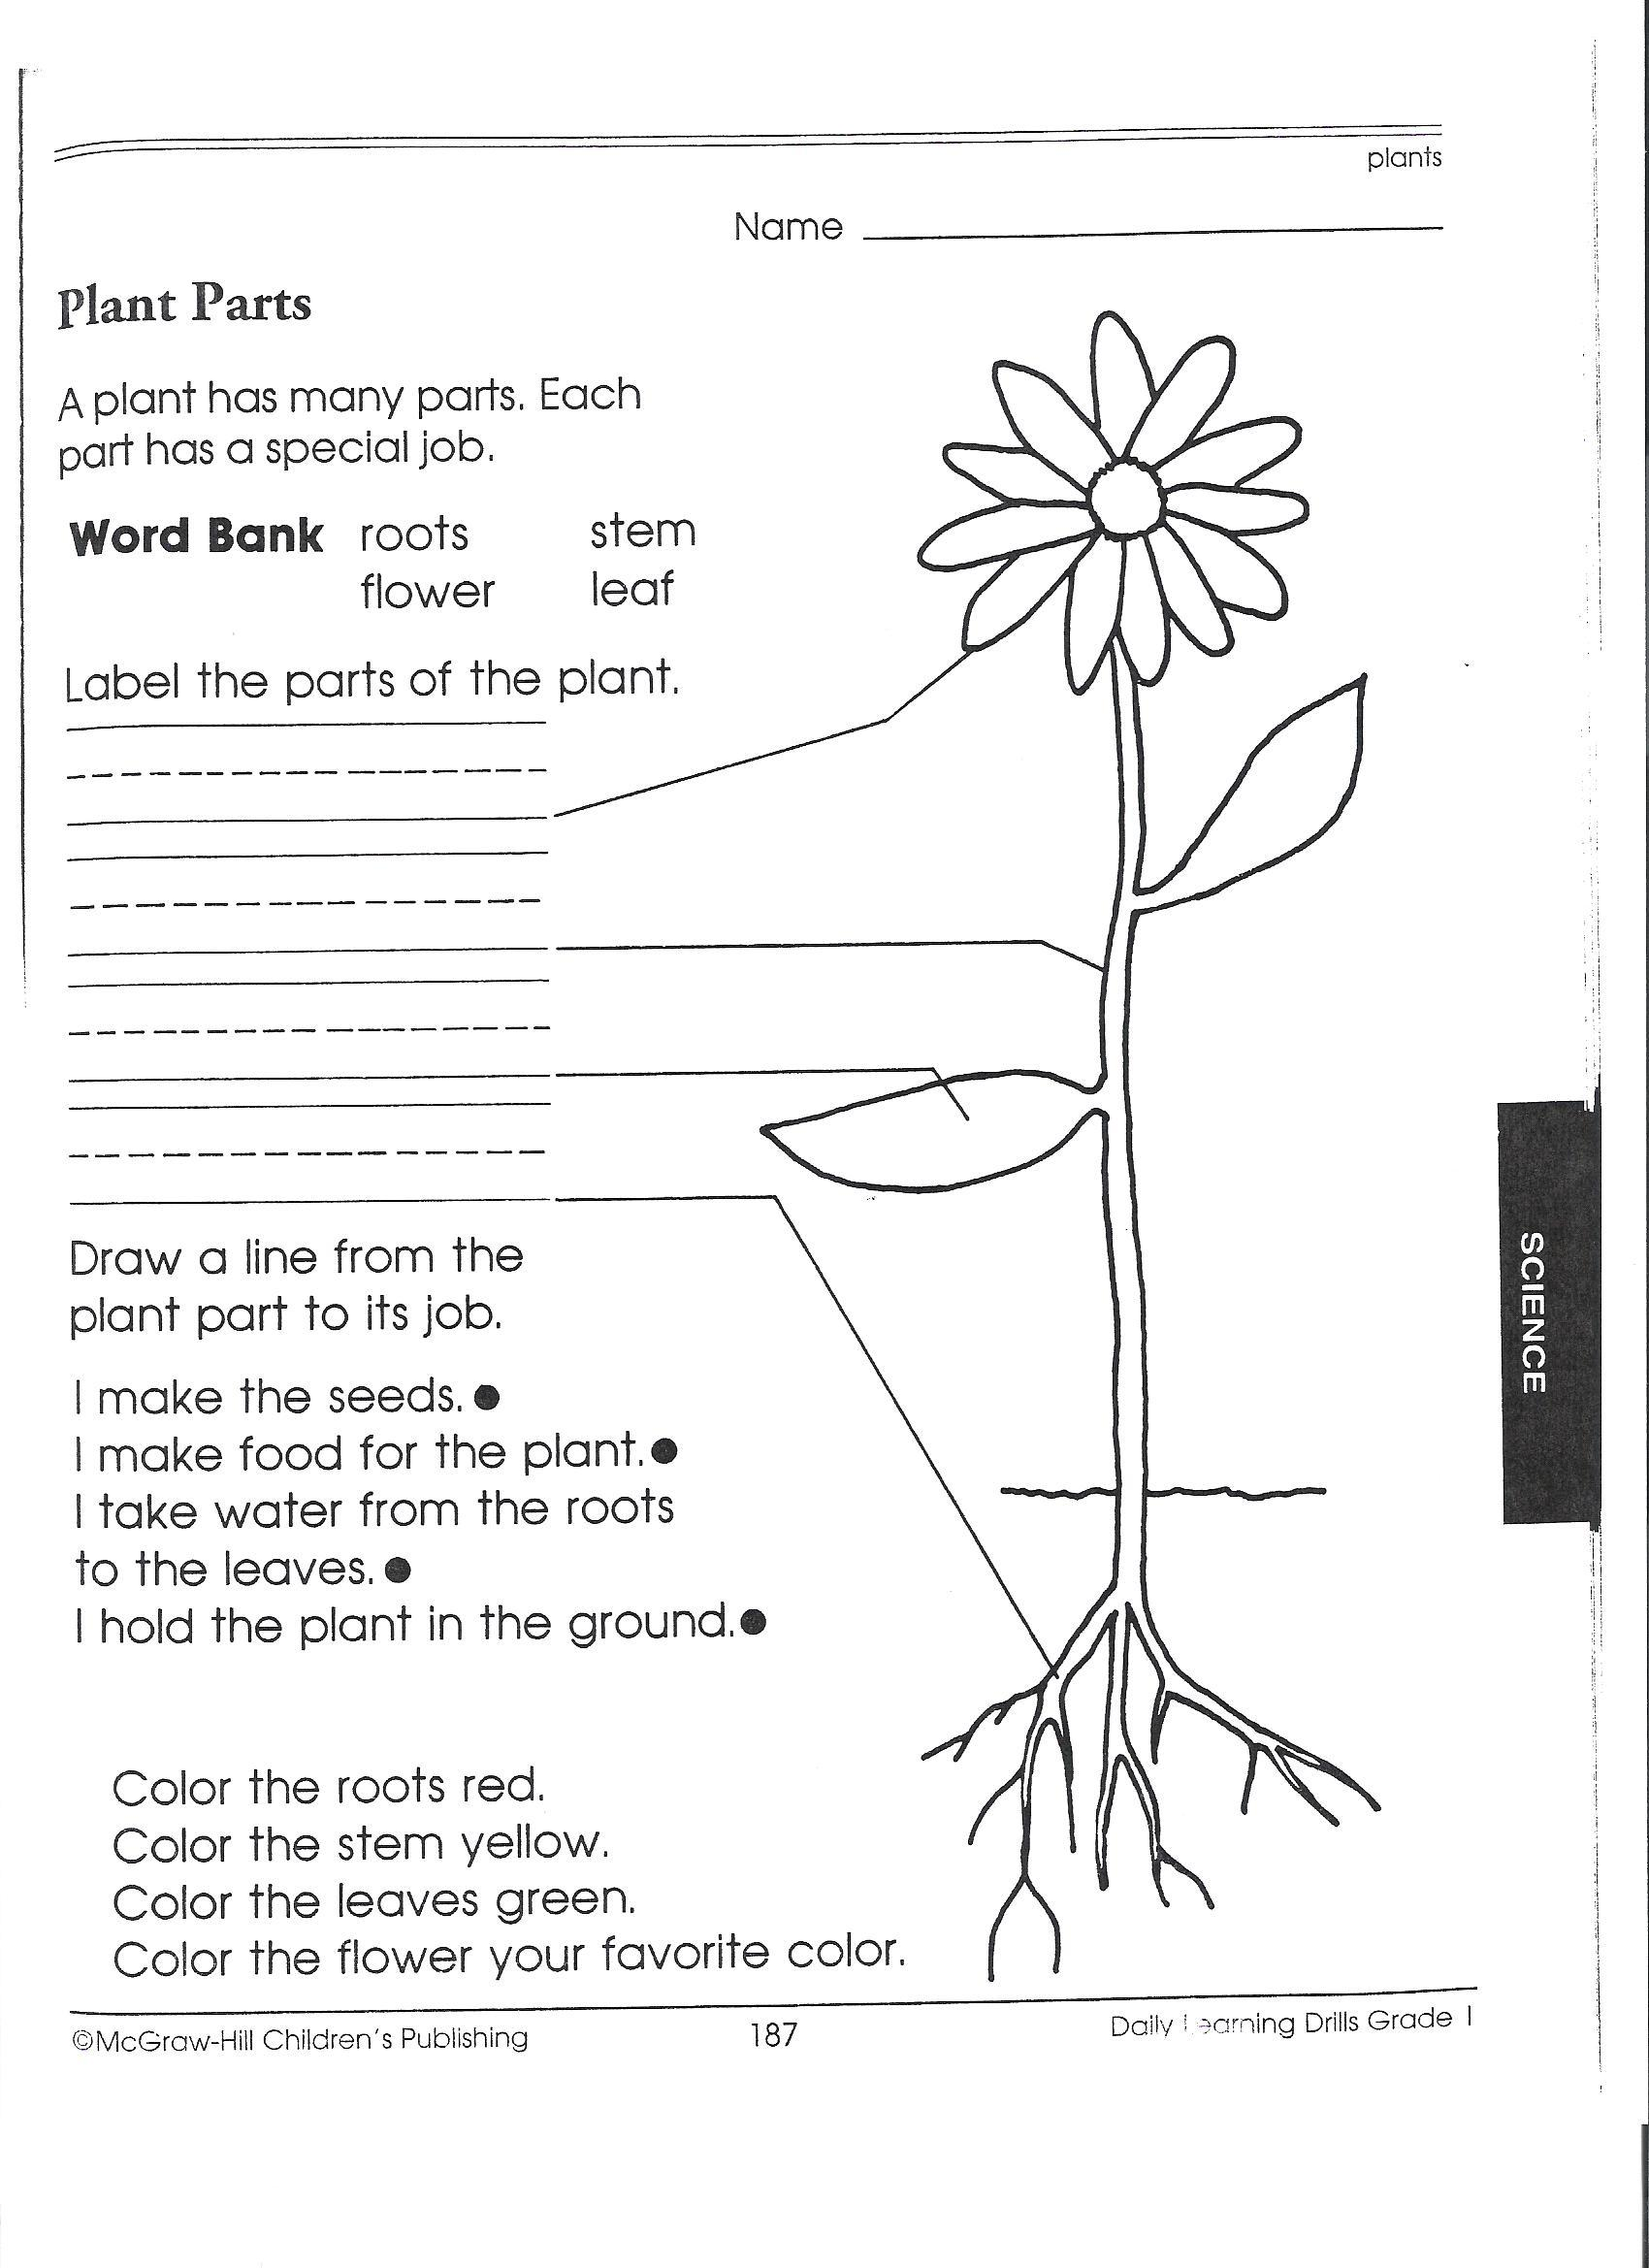 13 Best Images Of Plant Parts Worksheet 2nd Grade